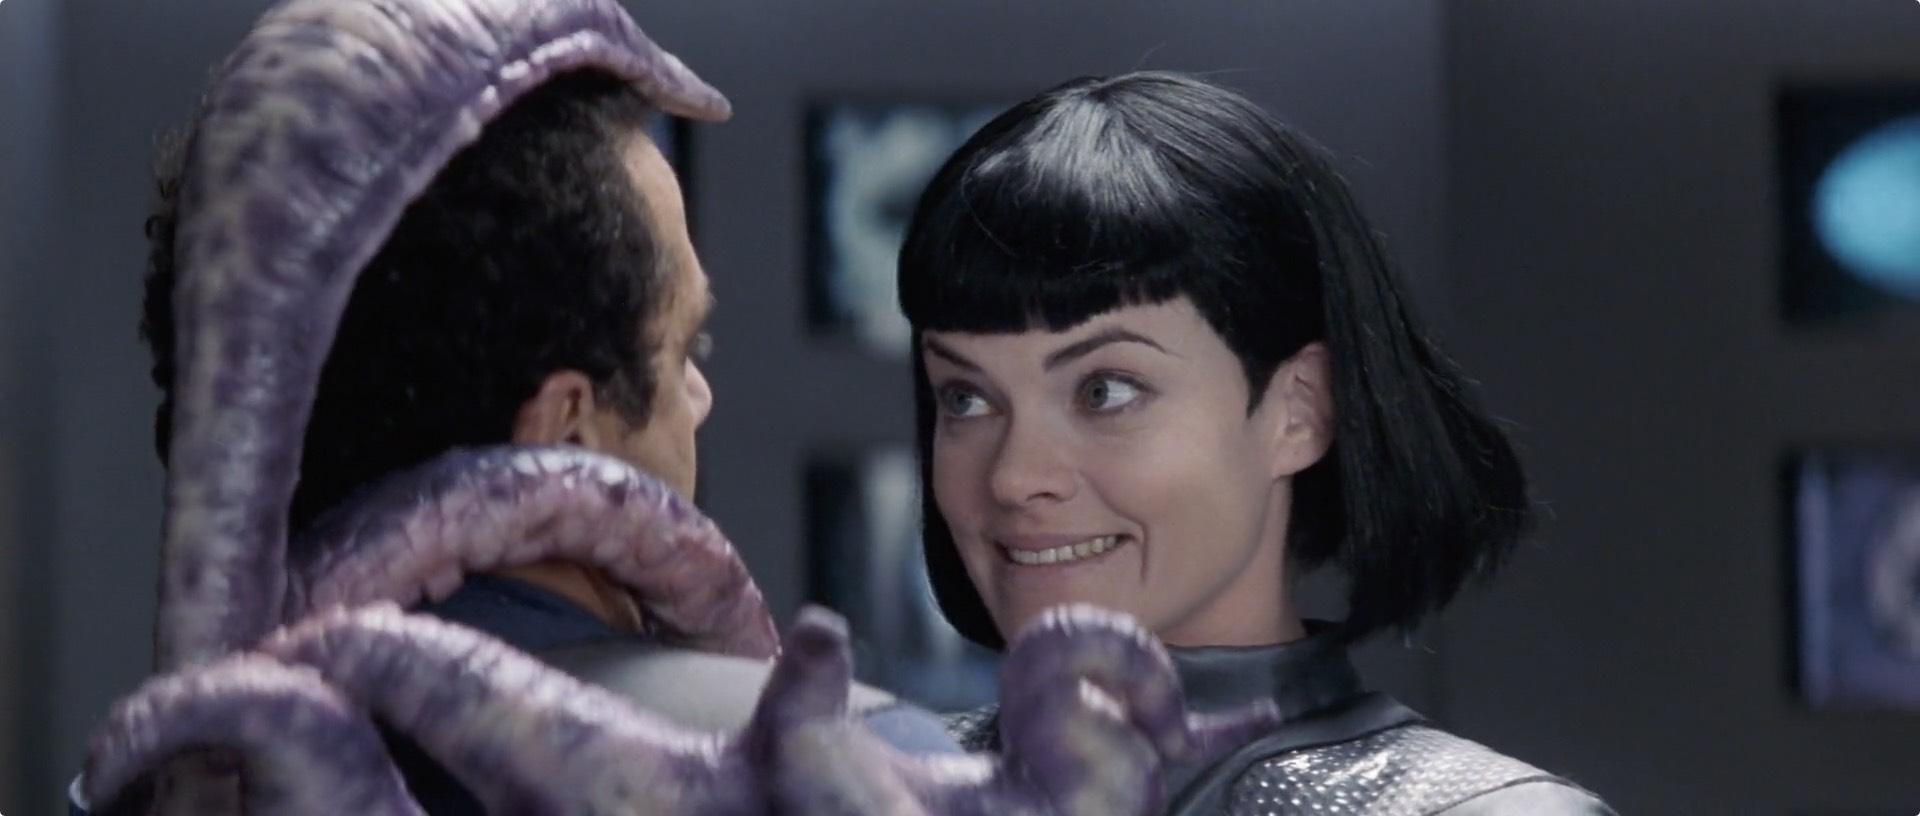 Sigourney weaver in galaxy quest